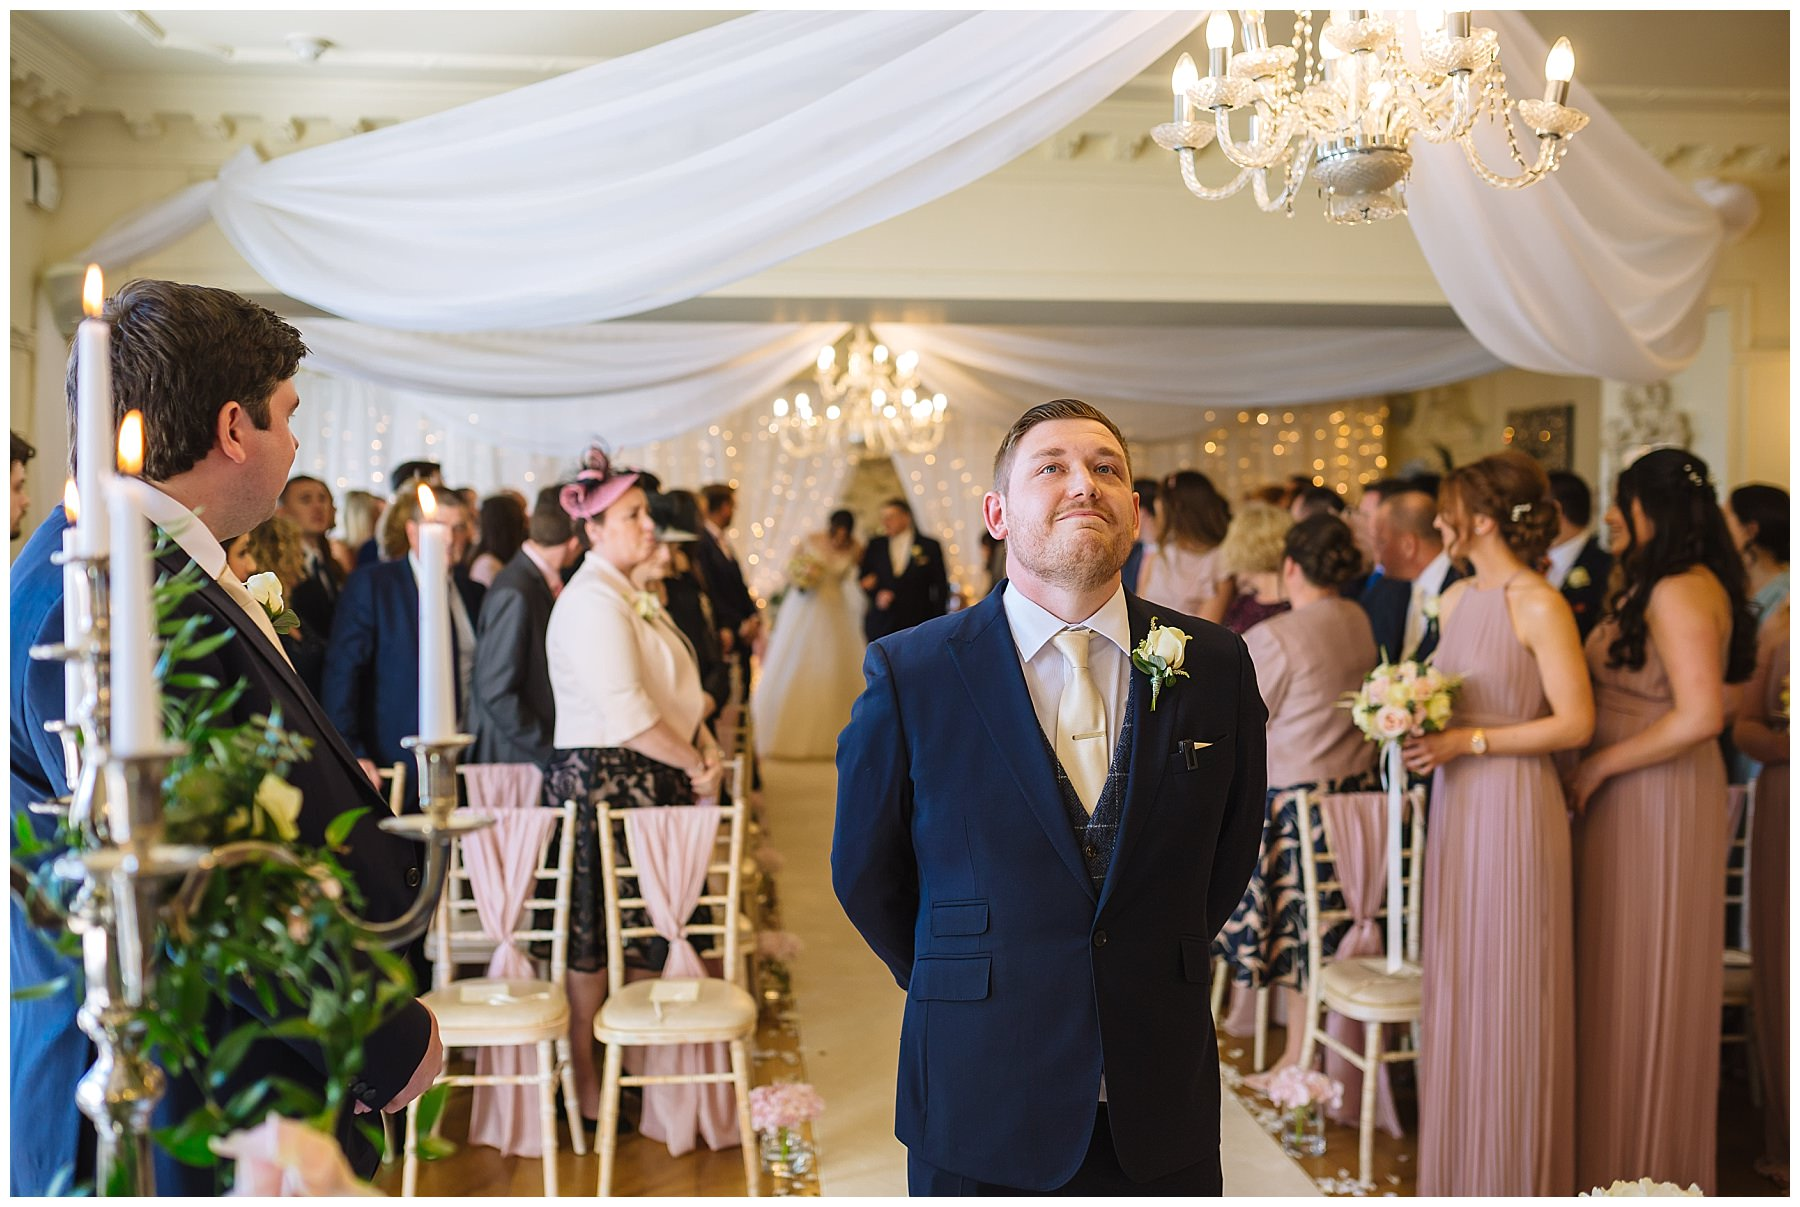 Emotional groom waits for brides arrival